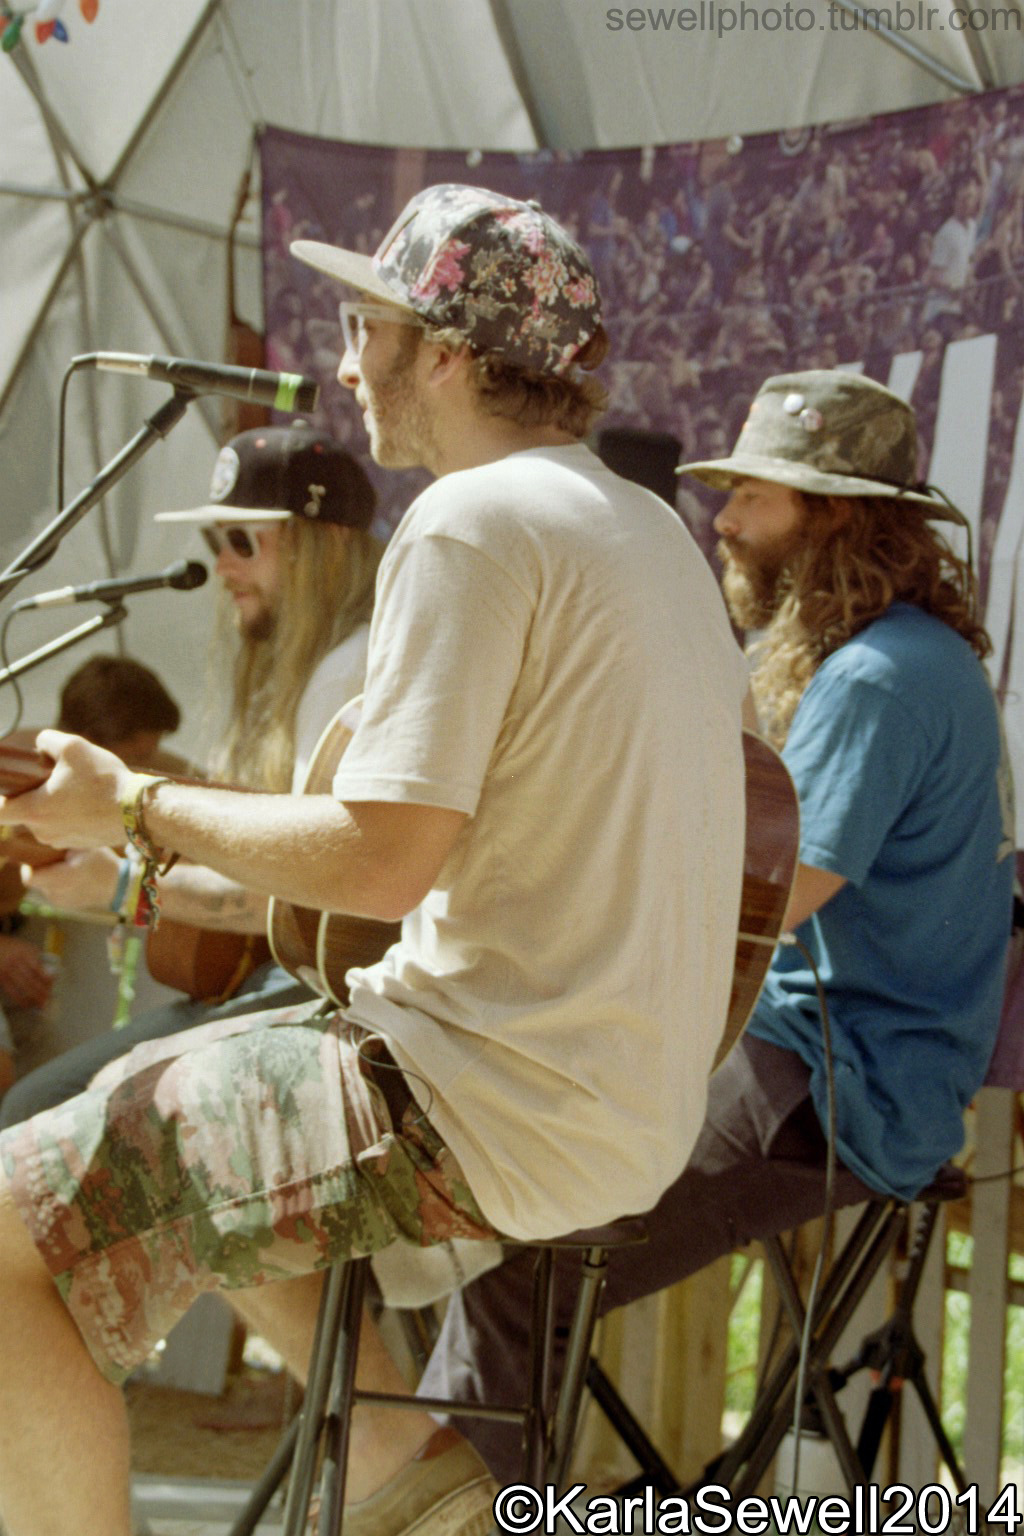 The Frendly jam session in the Martin Jam Dome with Mihali of Twiddle, Jack Mitrani, and Danny Davis. Taken June of 2014 in Windham, VT at the Frendly Gathering. Taken on a Canon EOS Rebel G SLR.  (Please don't remove tags or source, thanks!)